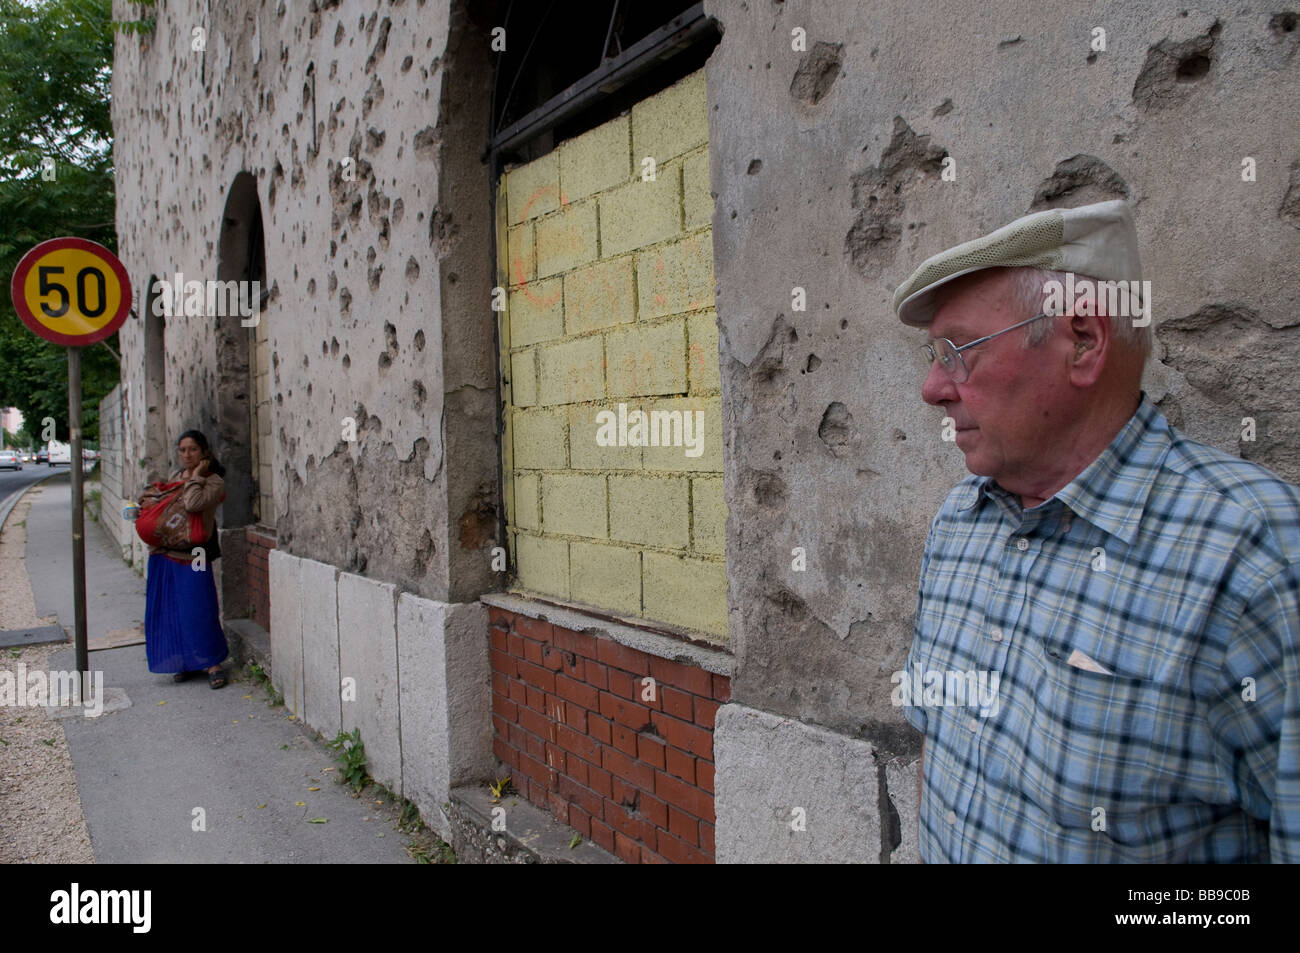 A Bosnian Croat and a Gypsy woman standing by a house showing shrapnel damage from 1992-95 war in Mostar a city - Stock Image